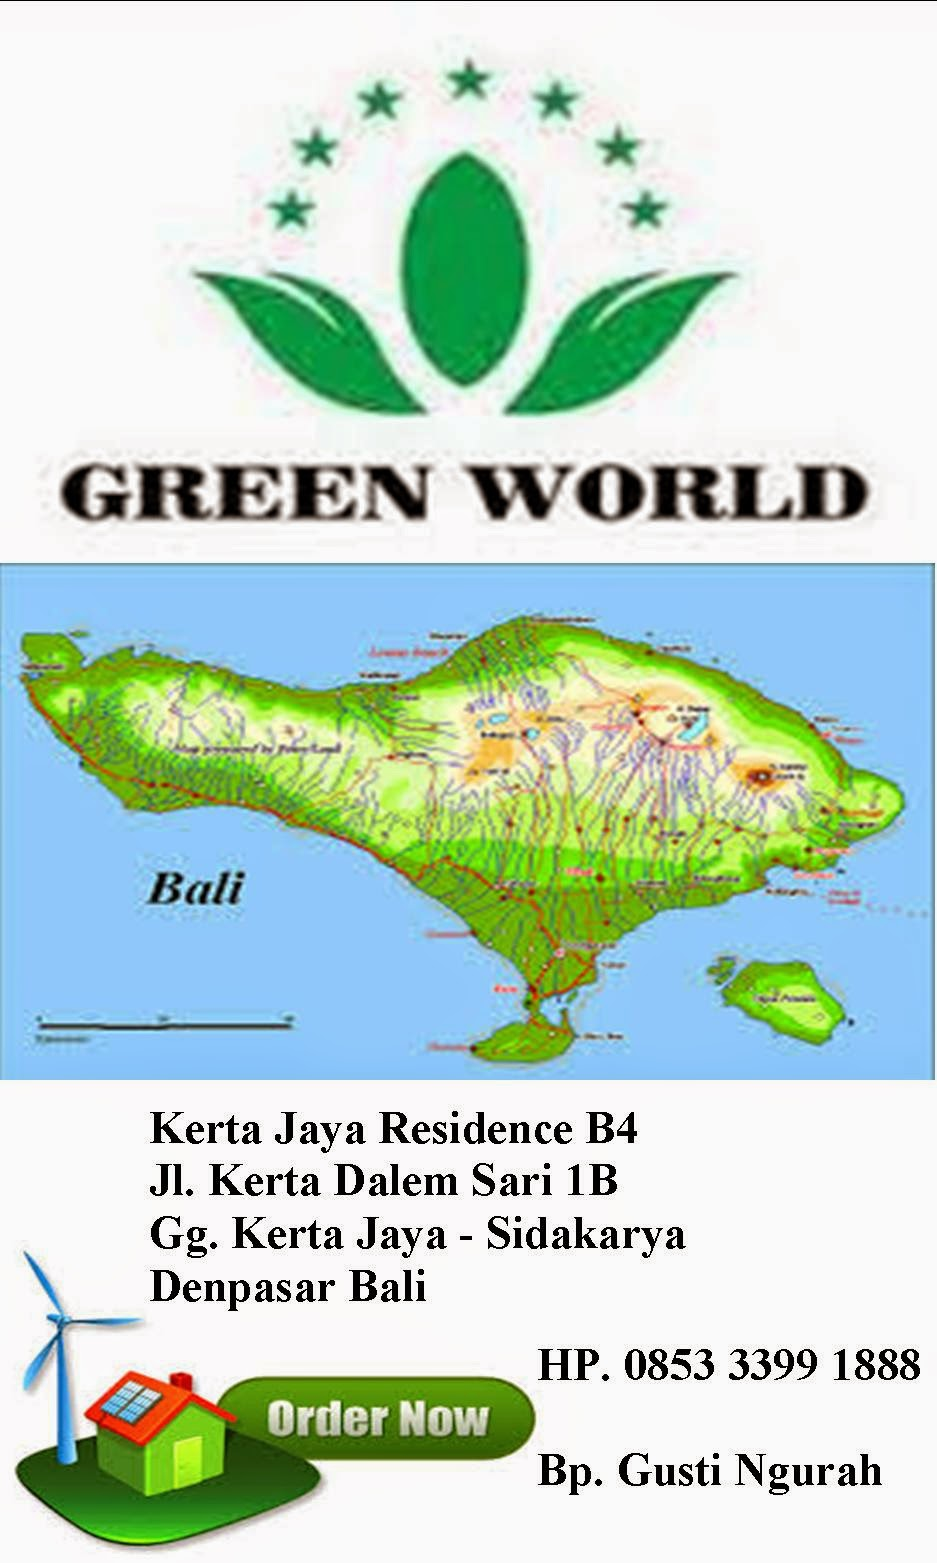 stokist green world bali